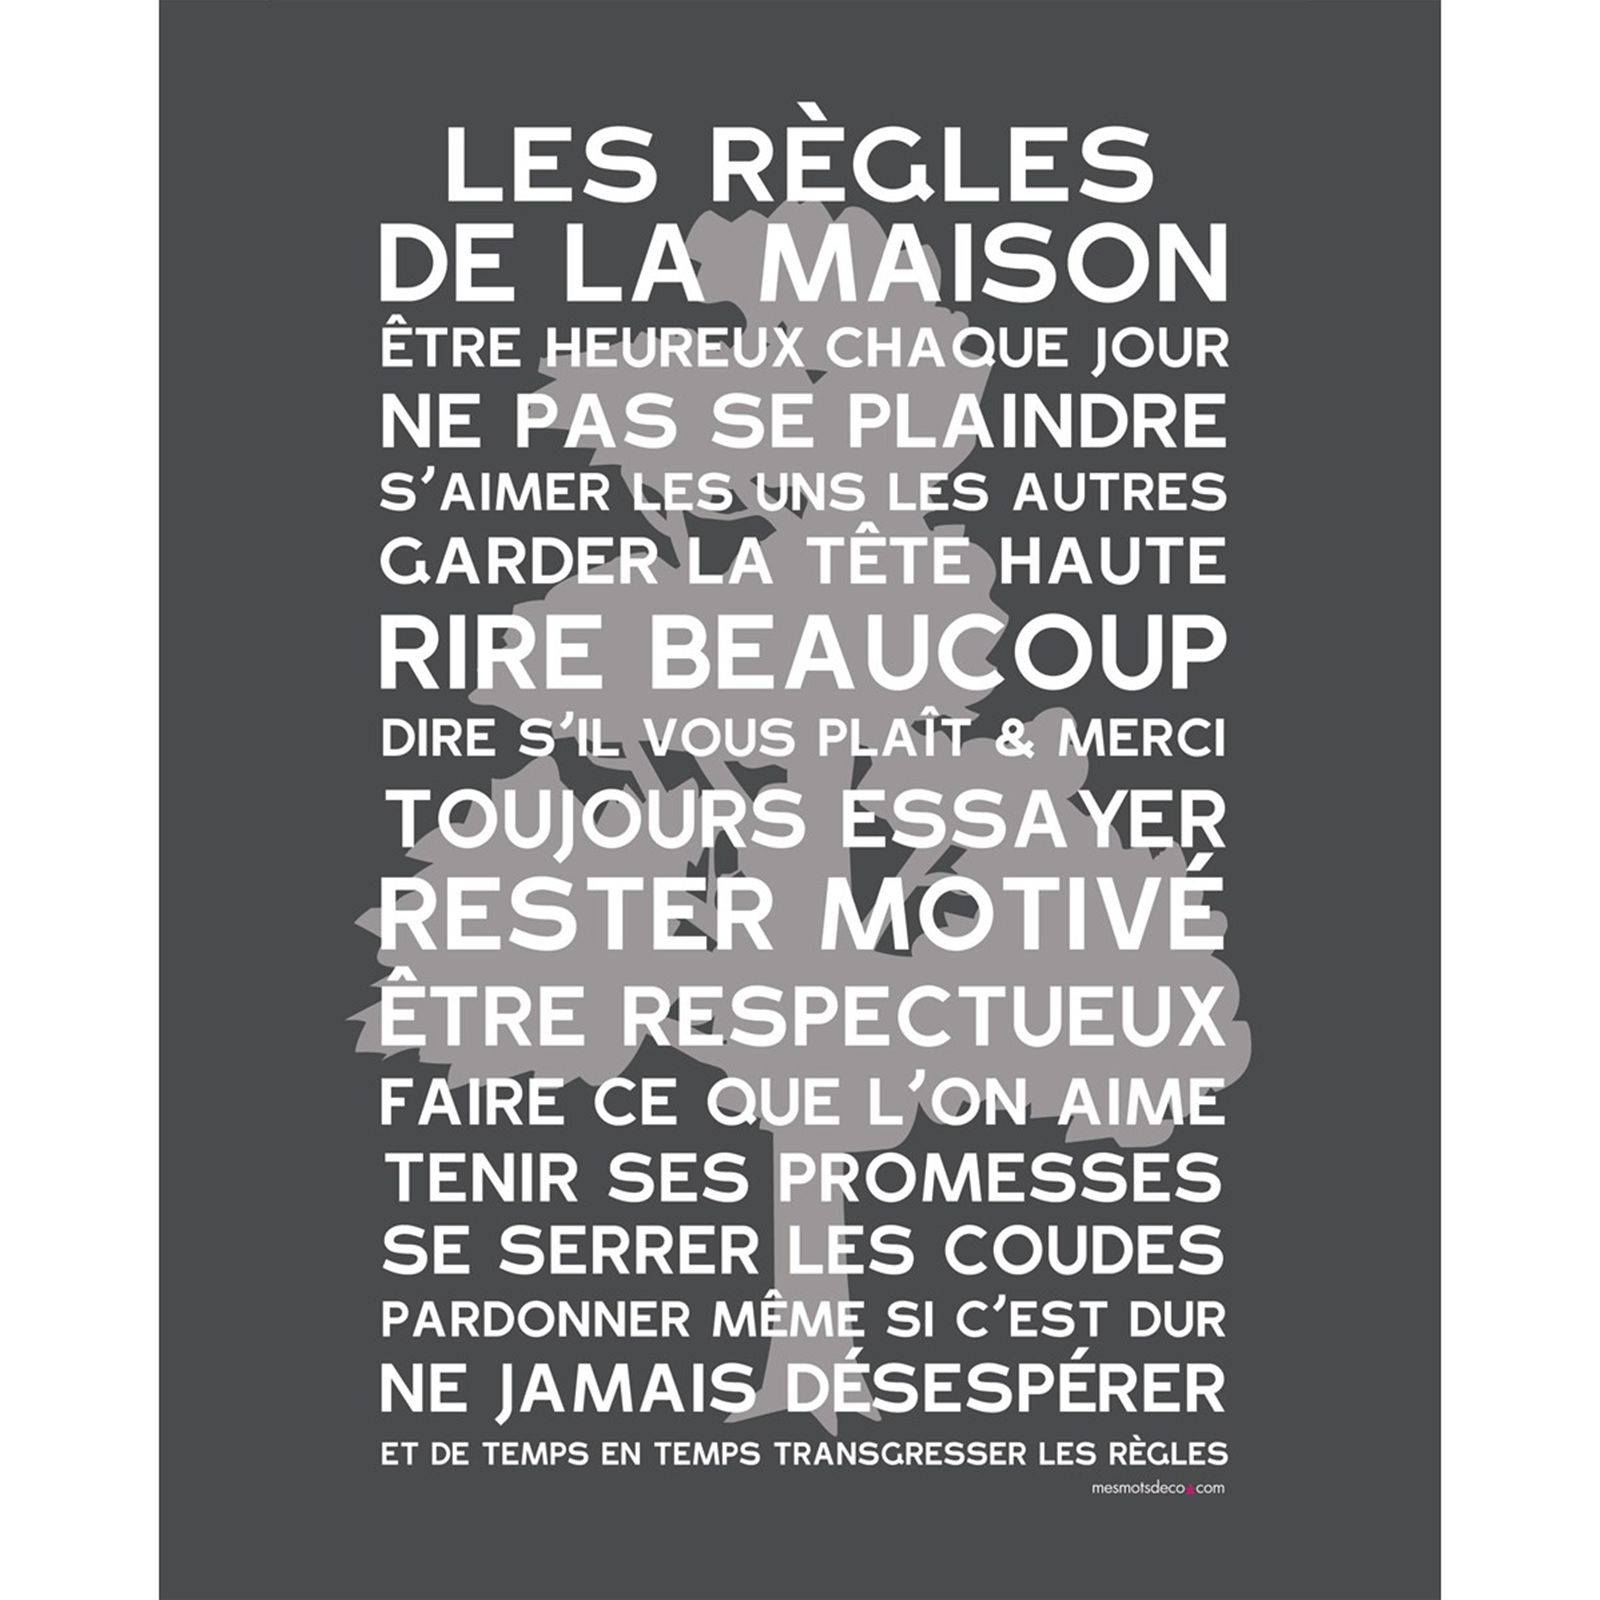 mes mots d co les r gles de la maison poster encadrer brandalley. Black Bedroom Furniture Sets. Home Design Ideas